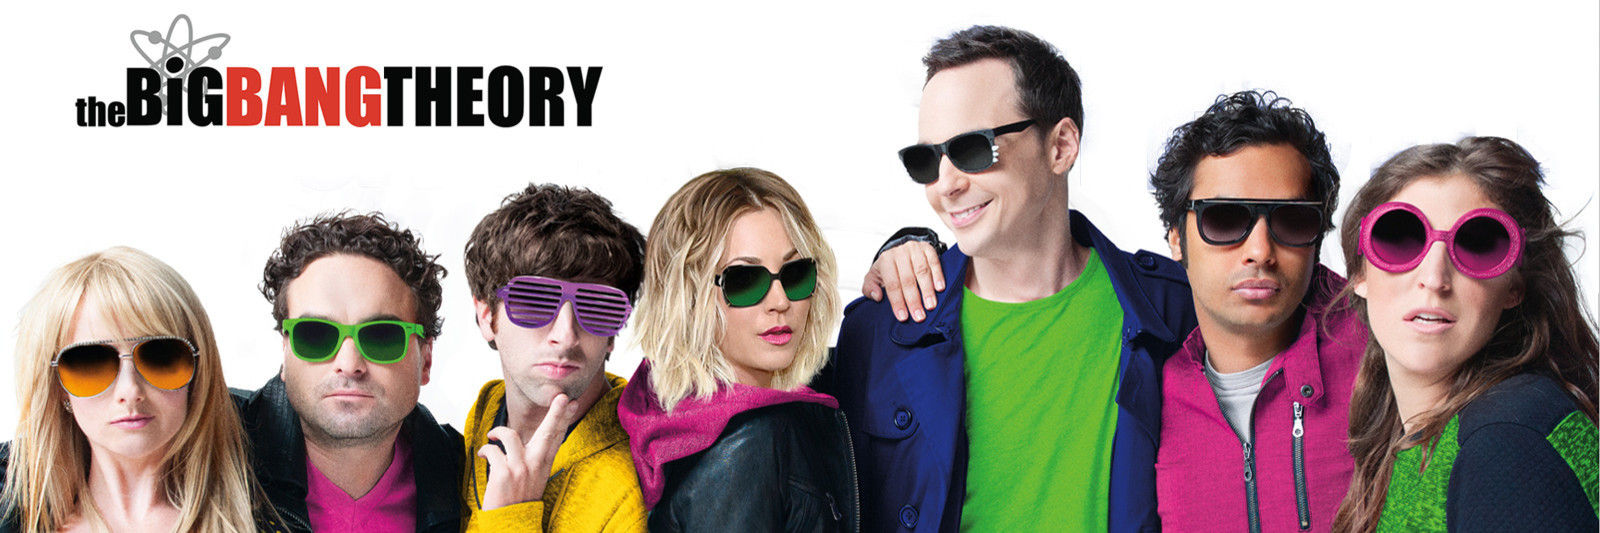 27 big bang theory billboard 1600 x 640 004 pre